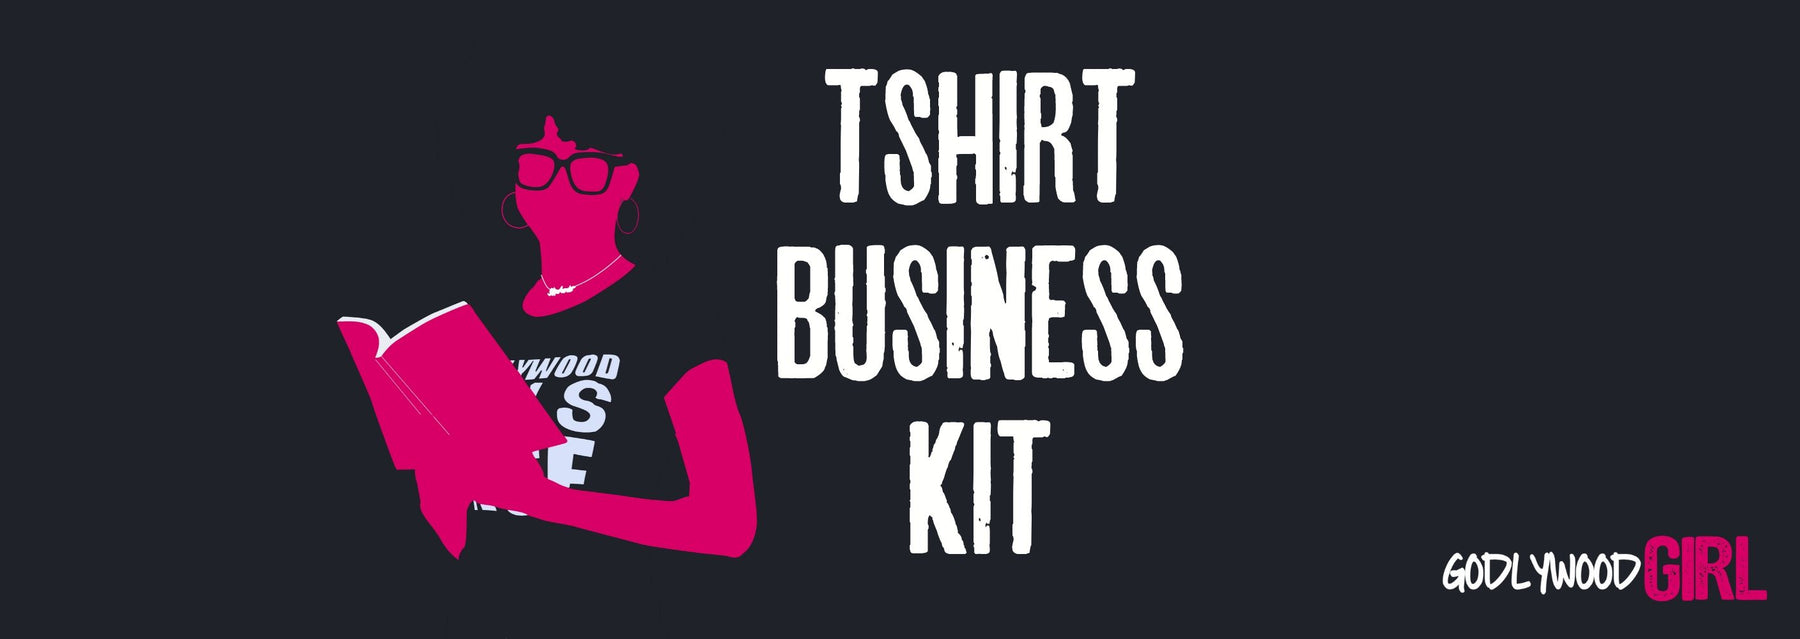 T SHIRT BUSINESS STARTER KIT (Start A T shirt Business: All The Equipment I Started Out With)